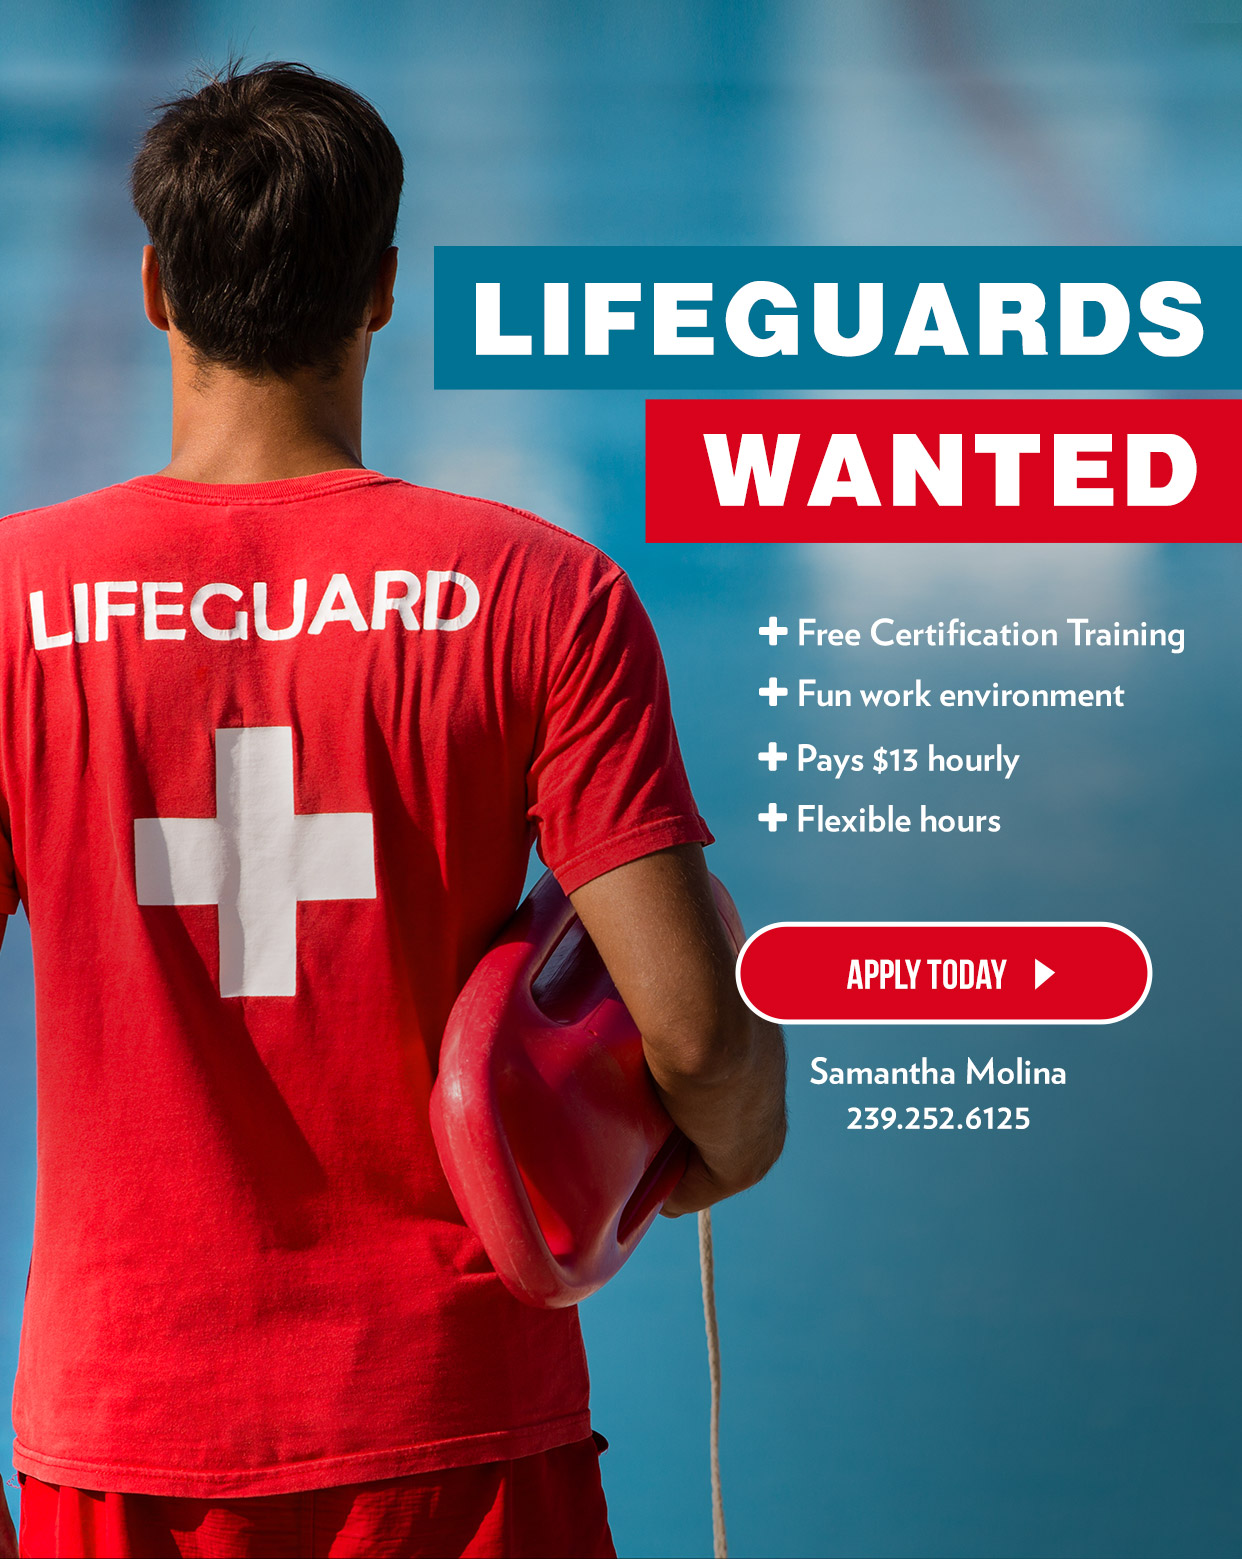 Lifeguards Wanted 3 mobile